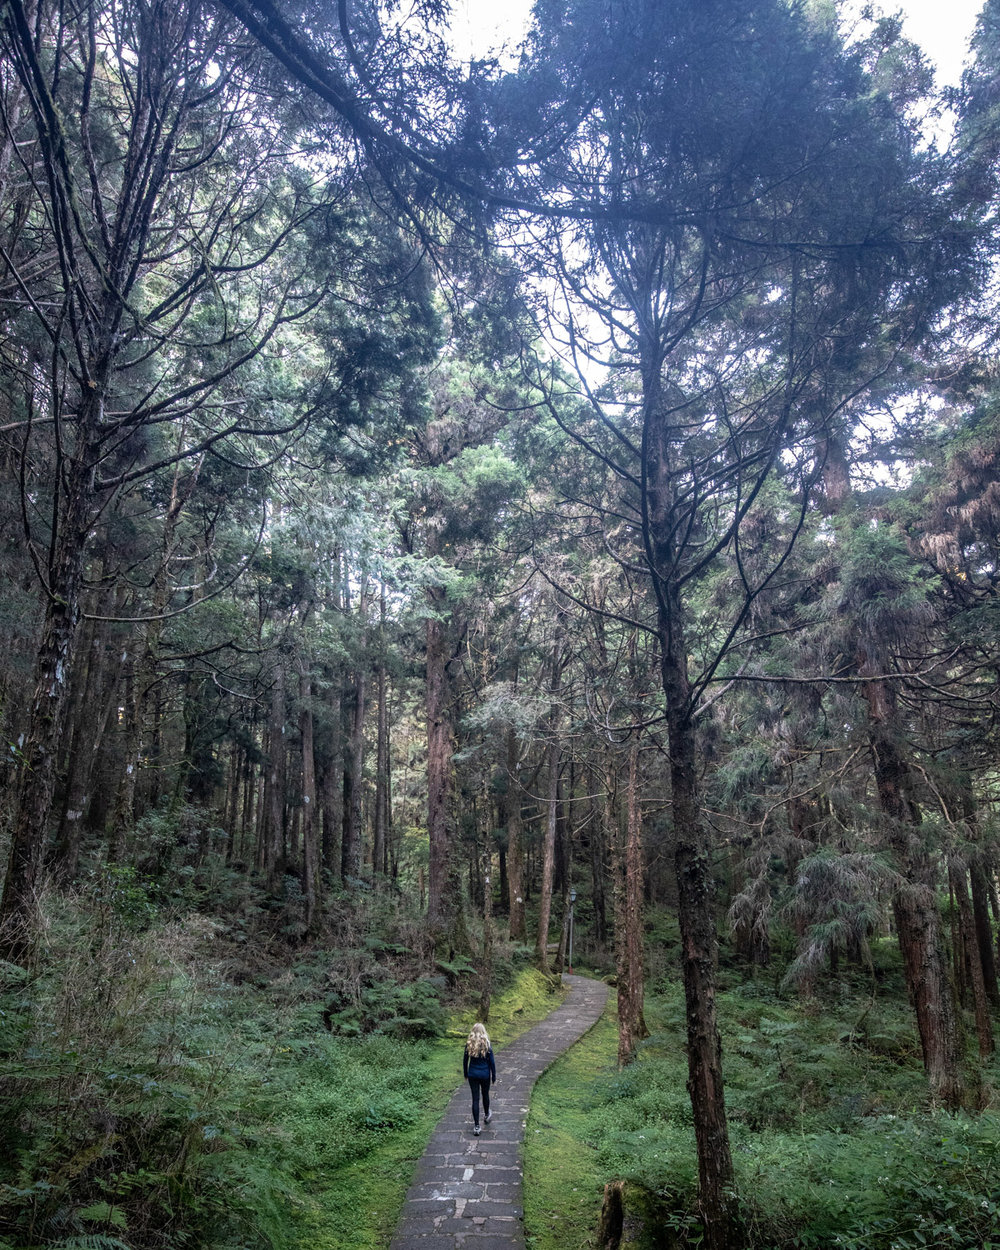 The walk back from Zhaoping Station to Alishan